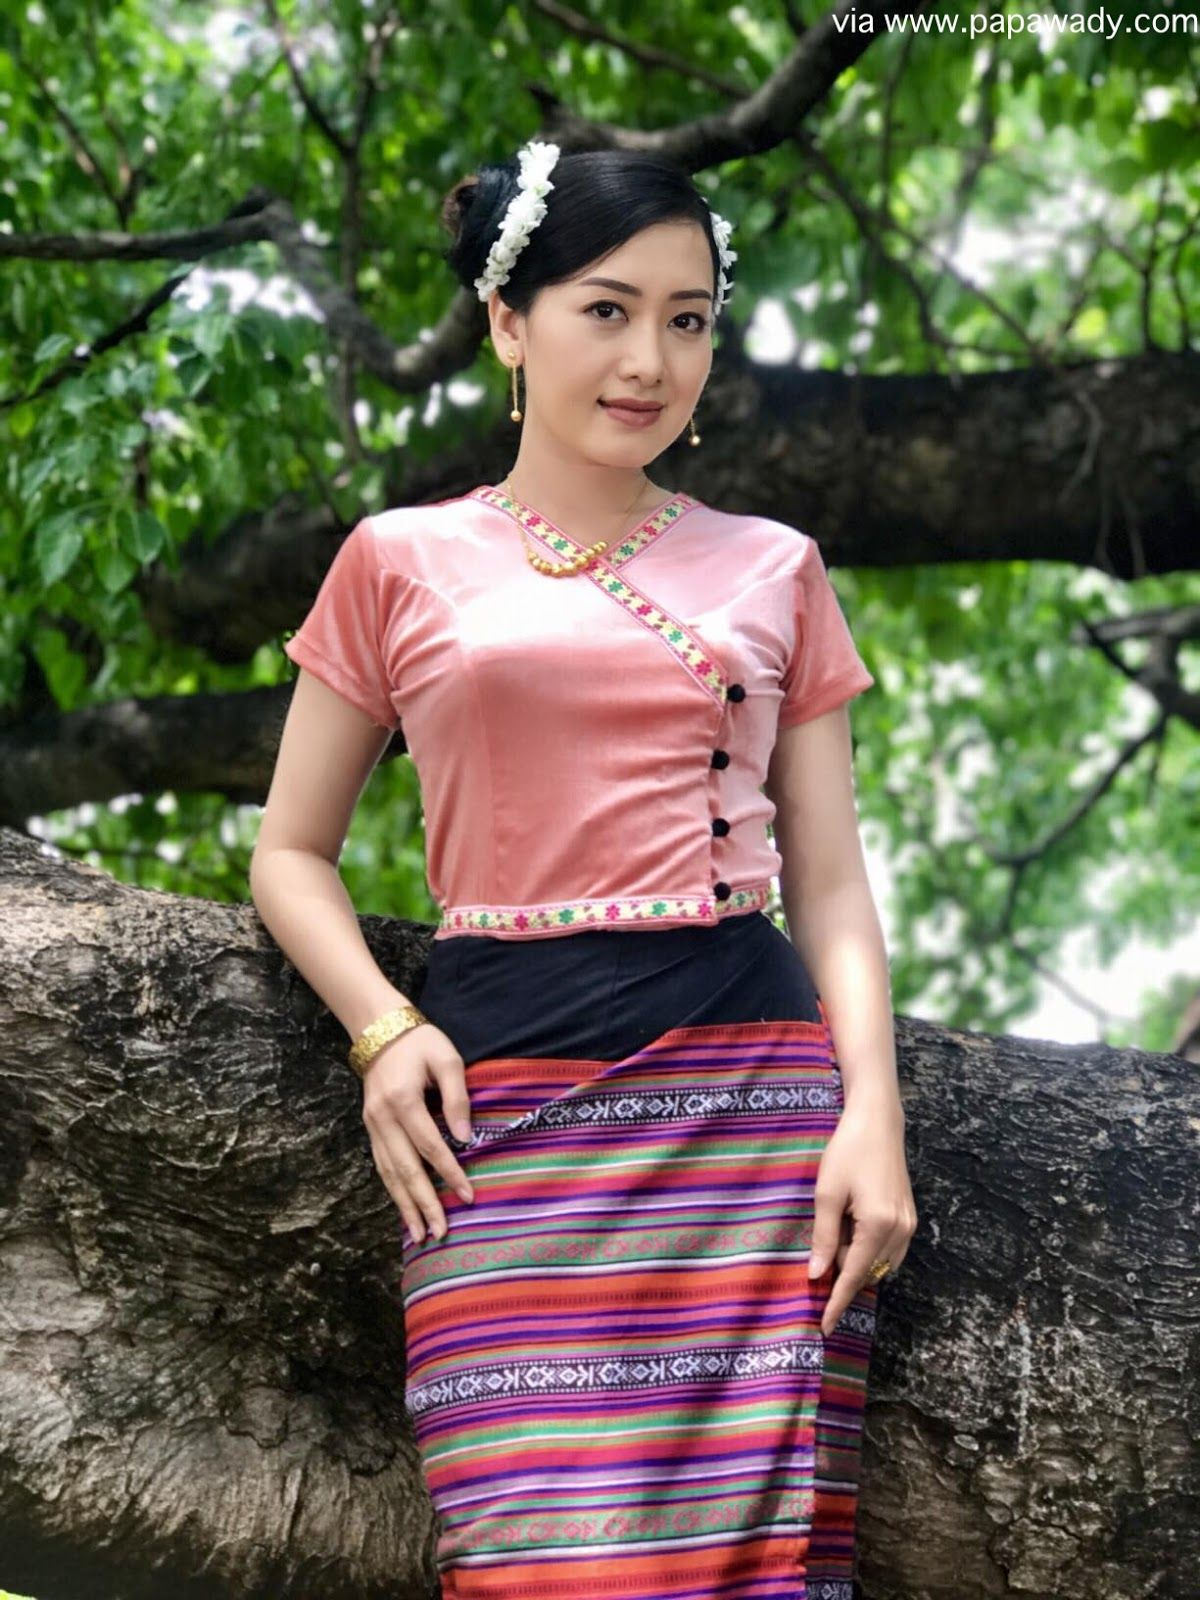 Yu Thandar Tin Fashion Style As A Myanmar Village Girl -4030